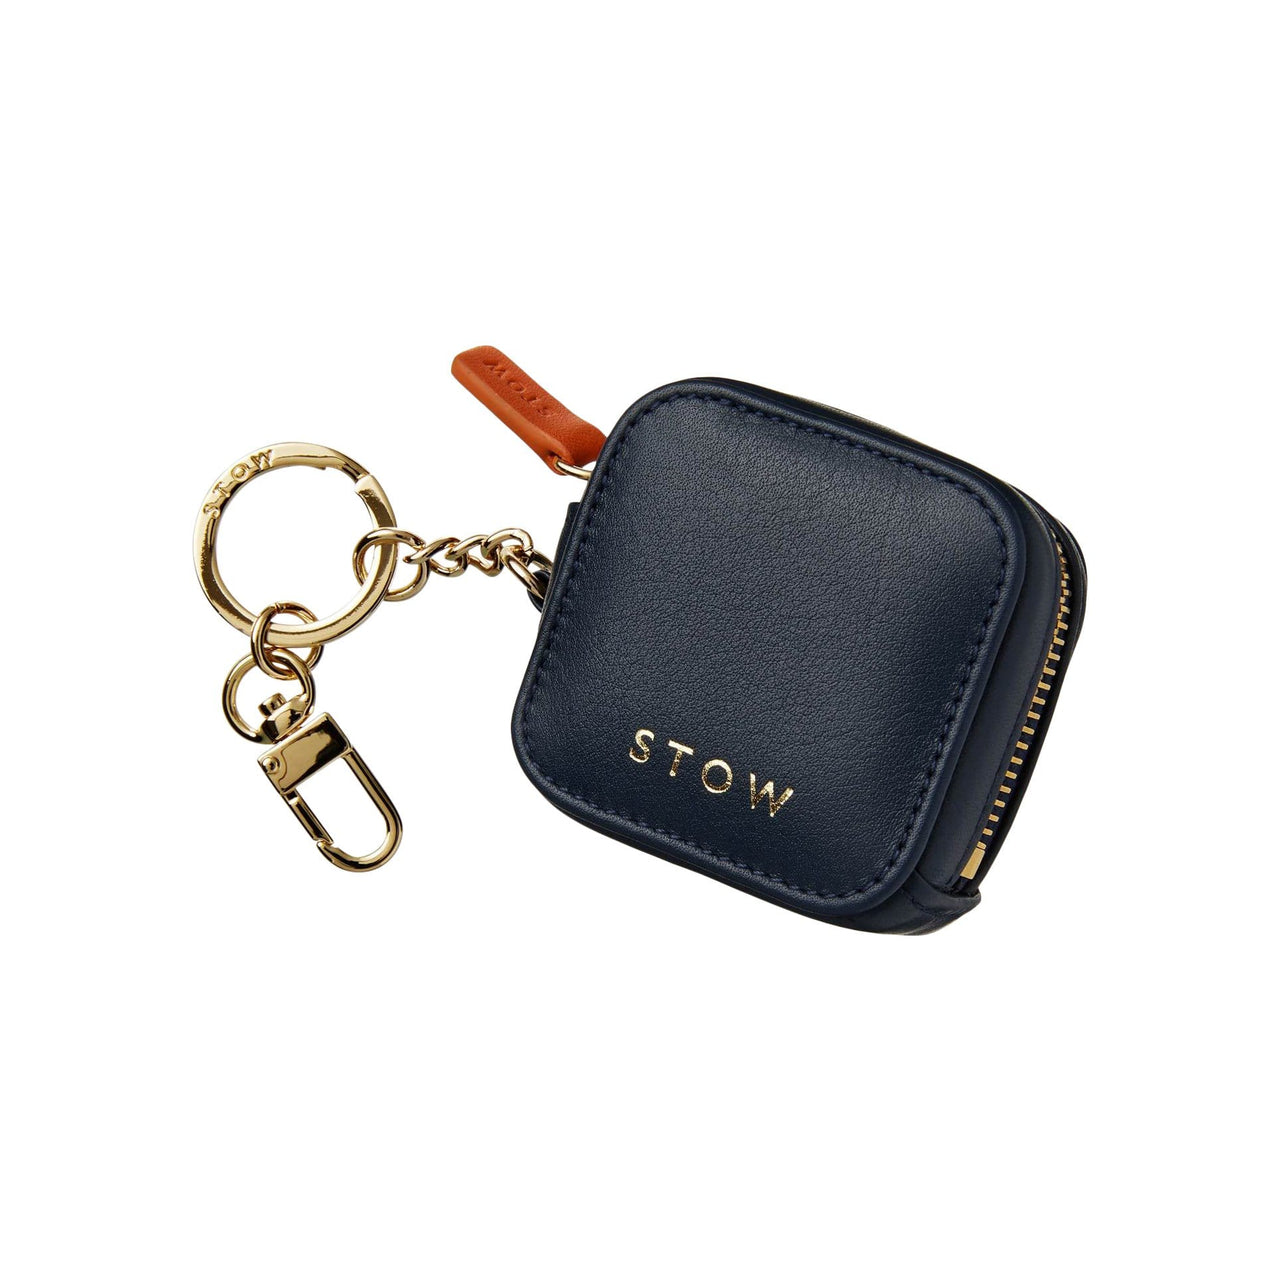 STOW Wallets, Pouches & Accessories Sapphire Blue Clip-On Earphone Case